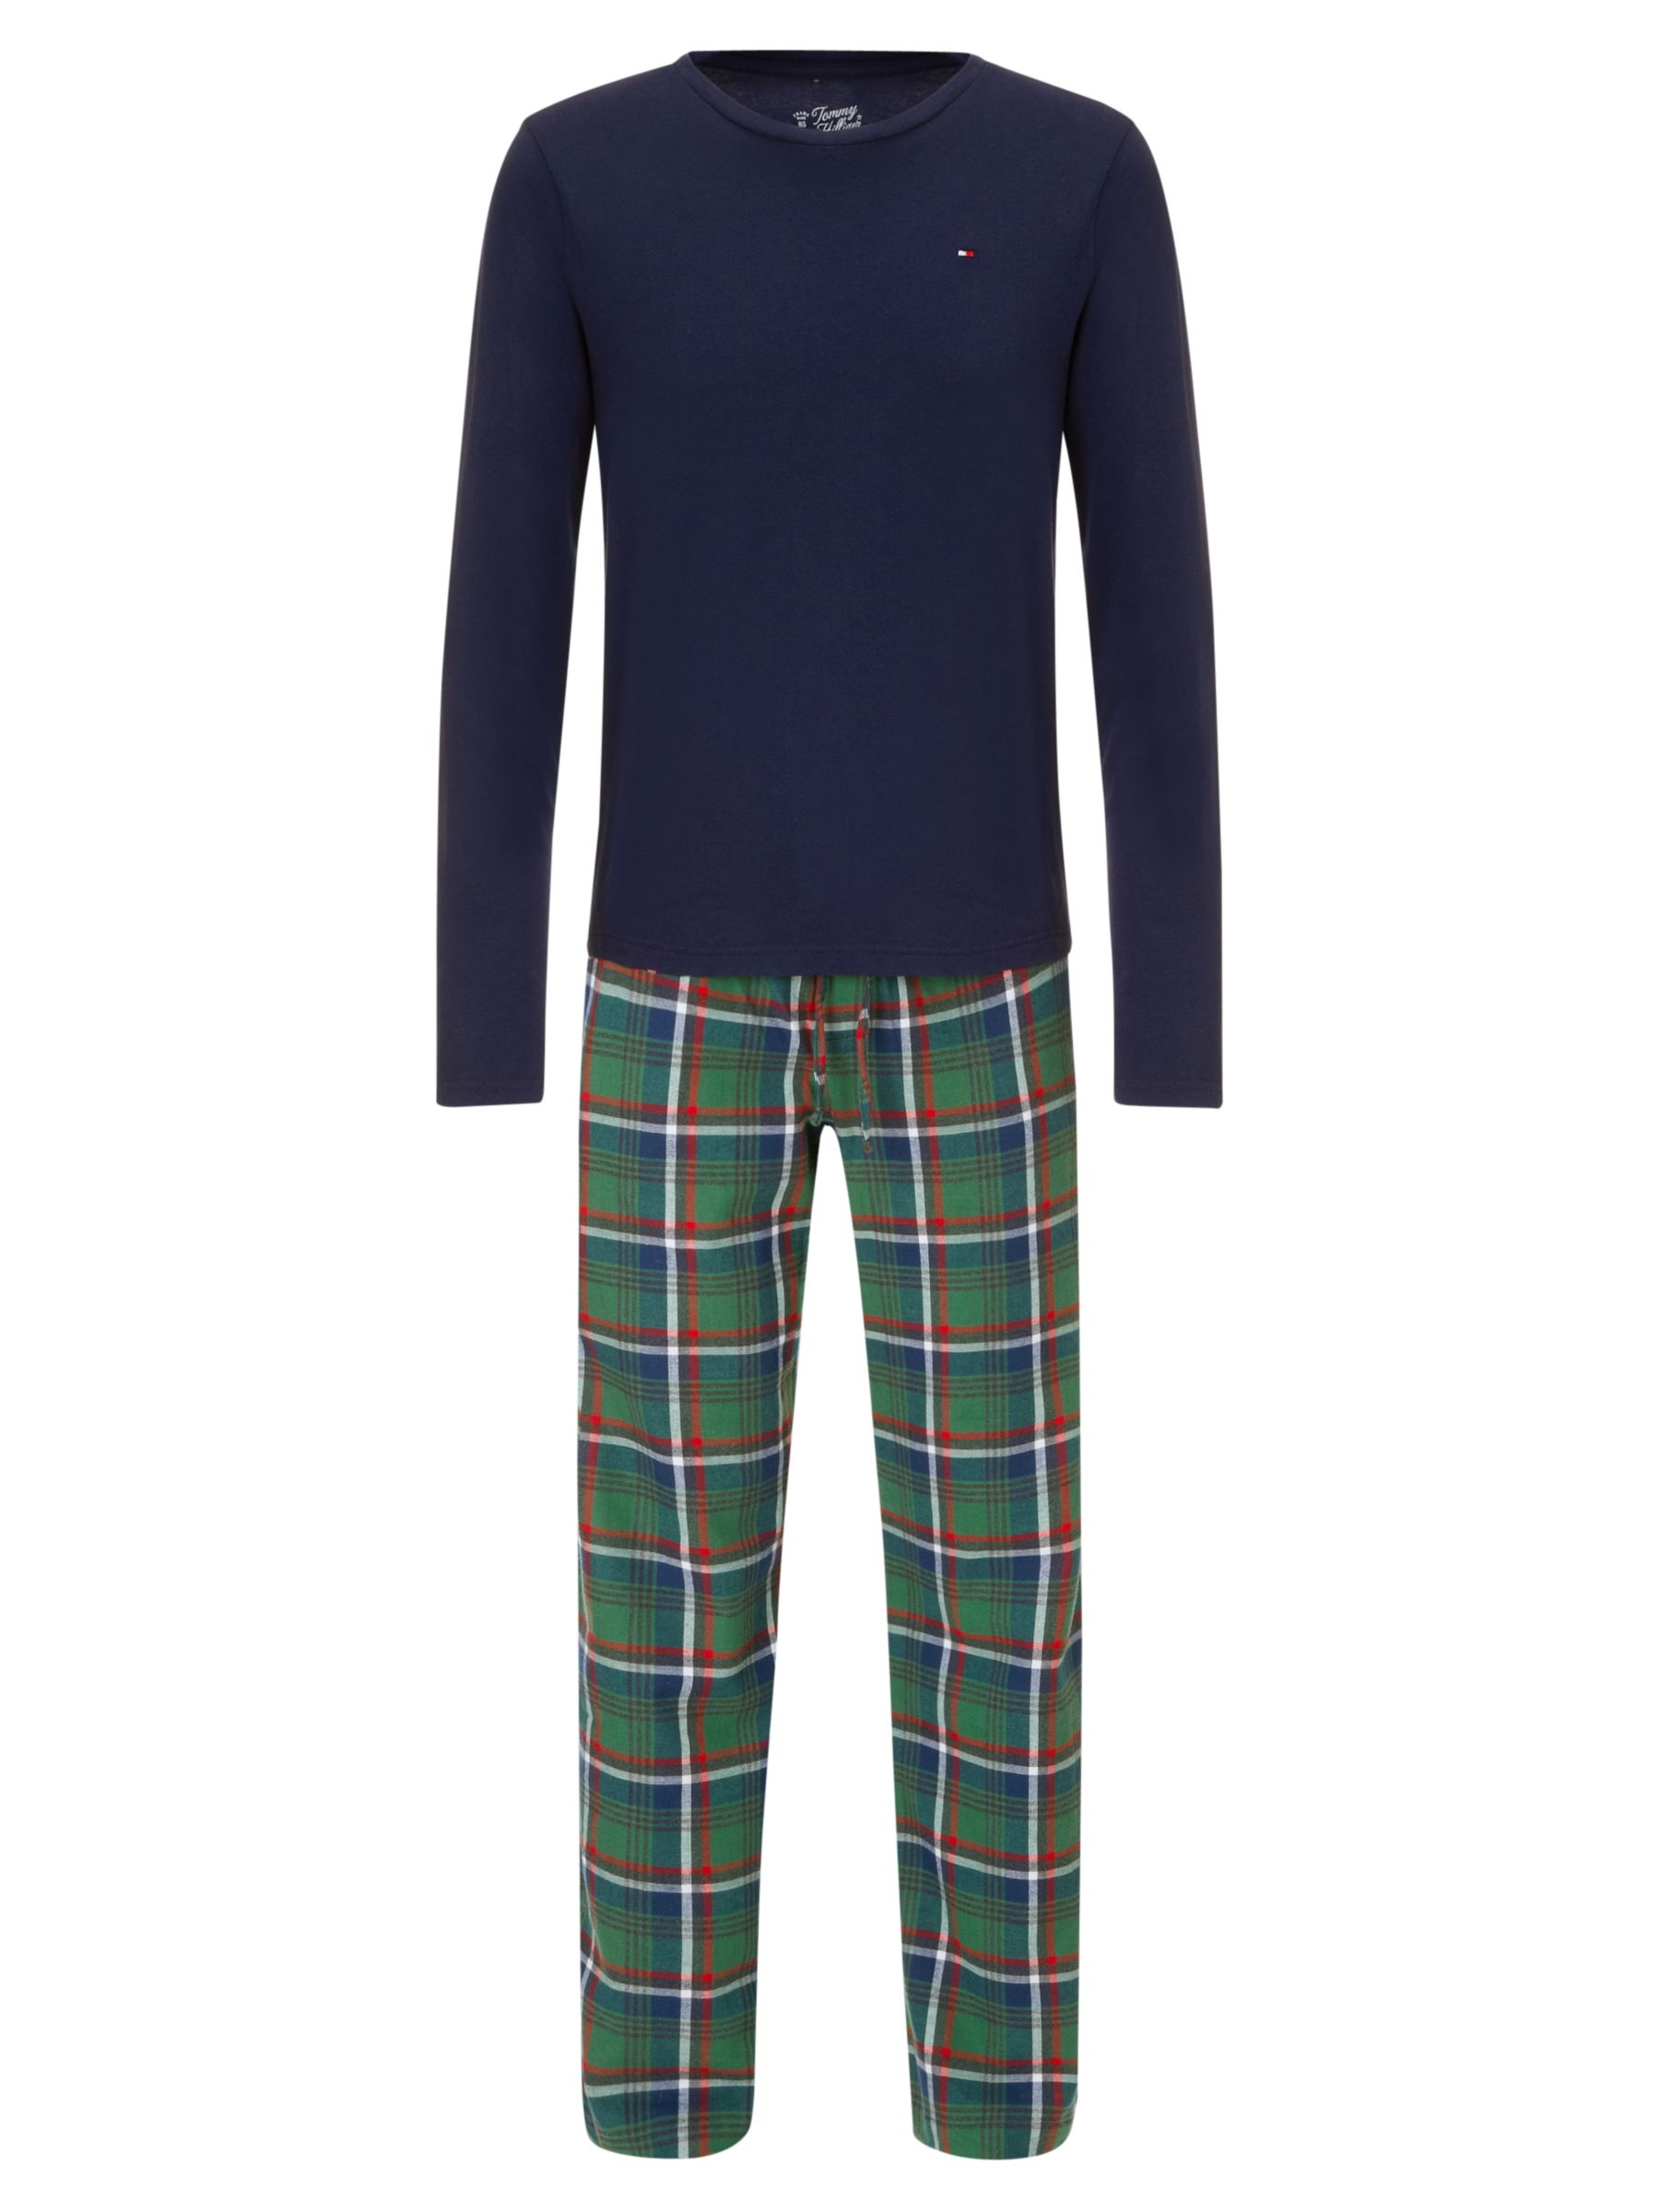 Tommy Hilfiger Two Piece Lounge Set, Navy/Green